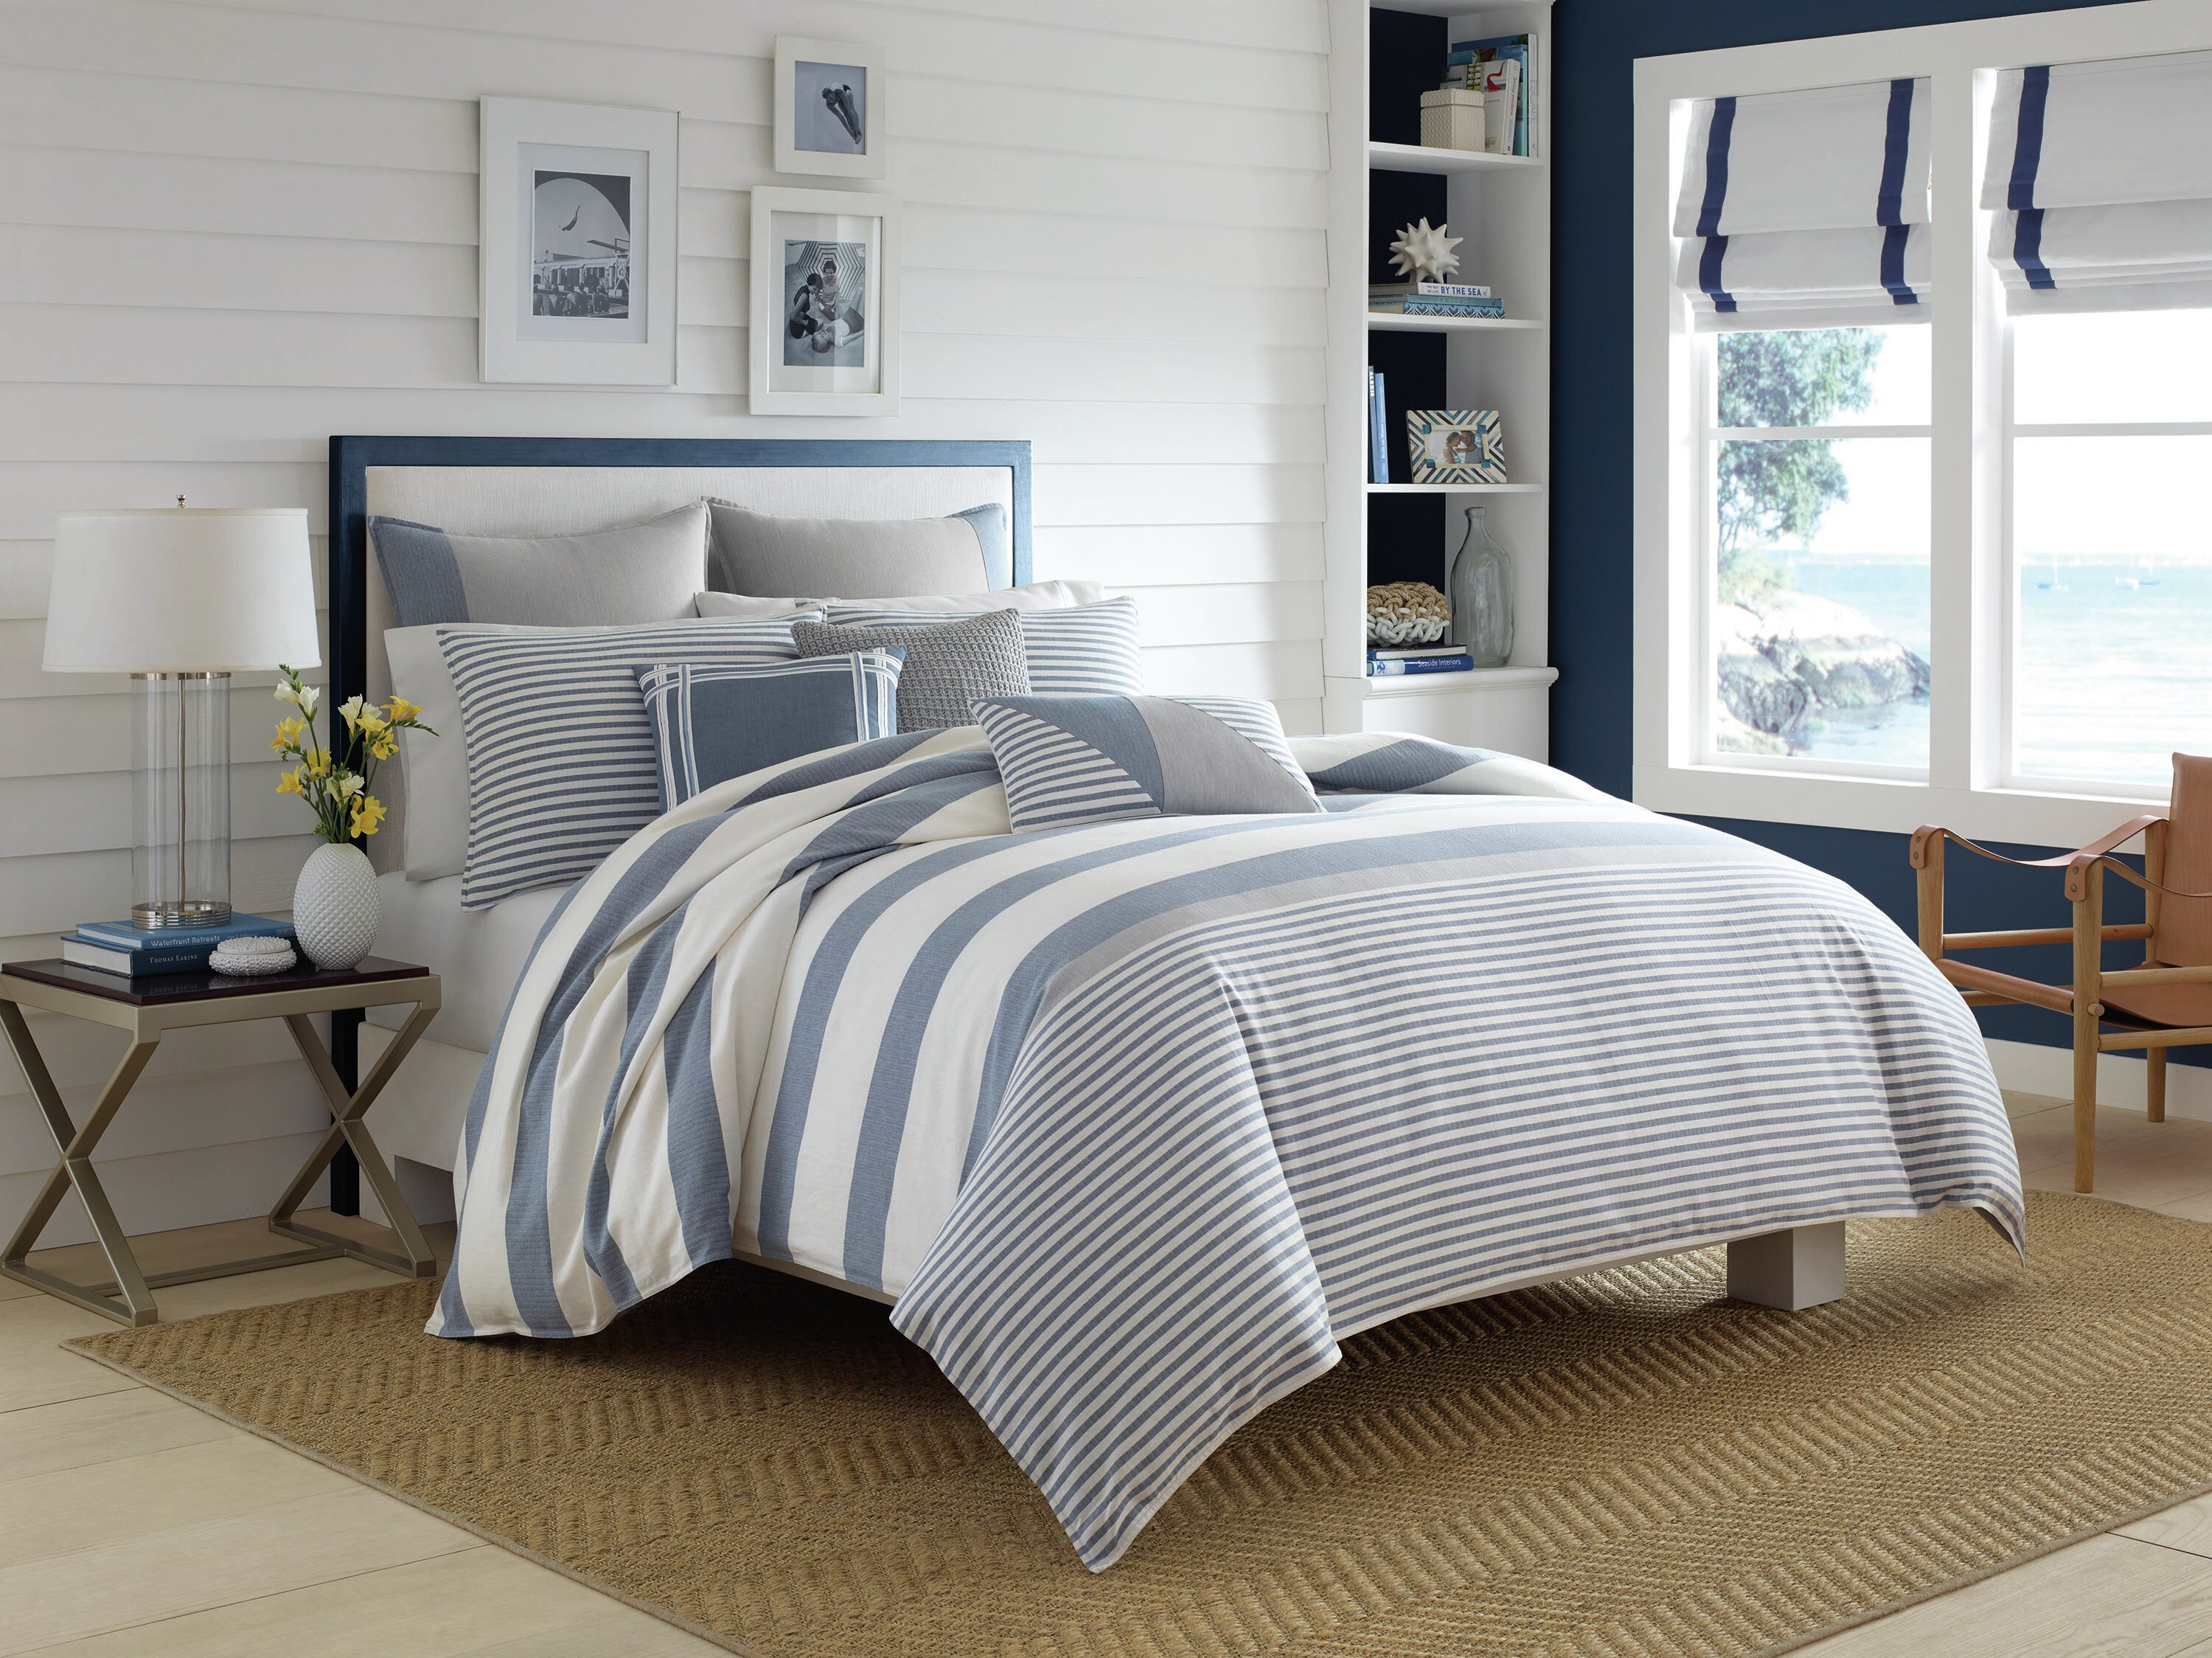 shipping midable spacious ter trendy nautica sebec sheets baby pink gabedelacruz piece elephant king newborn nautical twin clearance set free bedding full breathtaking grey day striking challenge figure six with a size crib and tag of the sets comforter archive caldwell